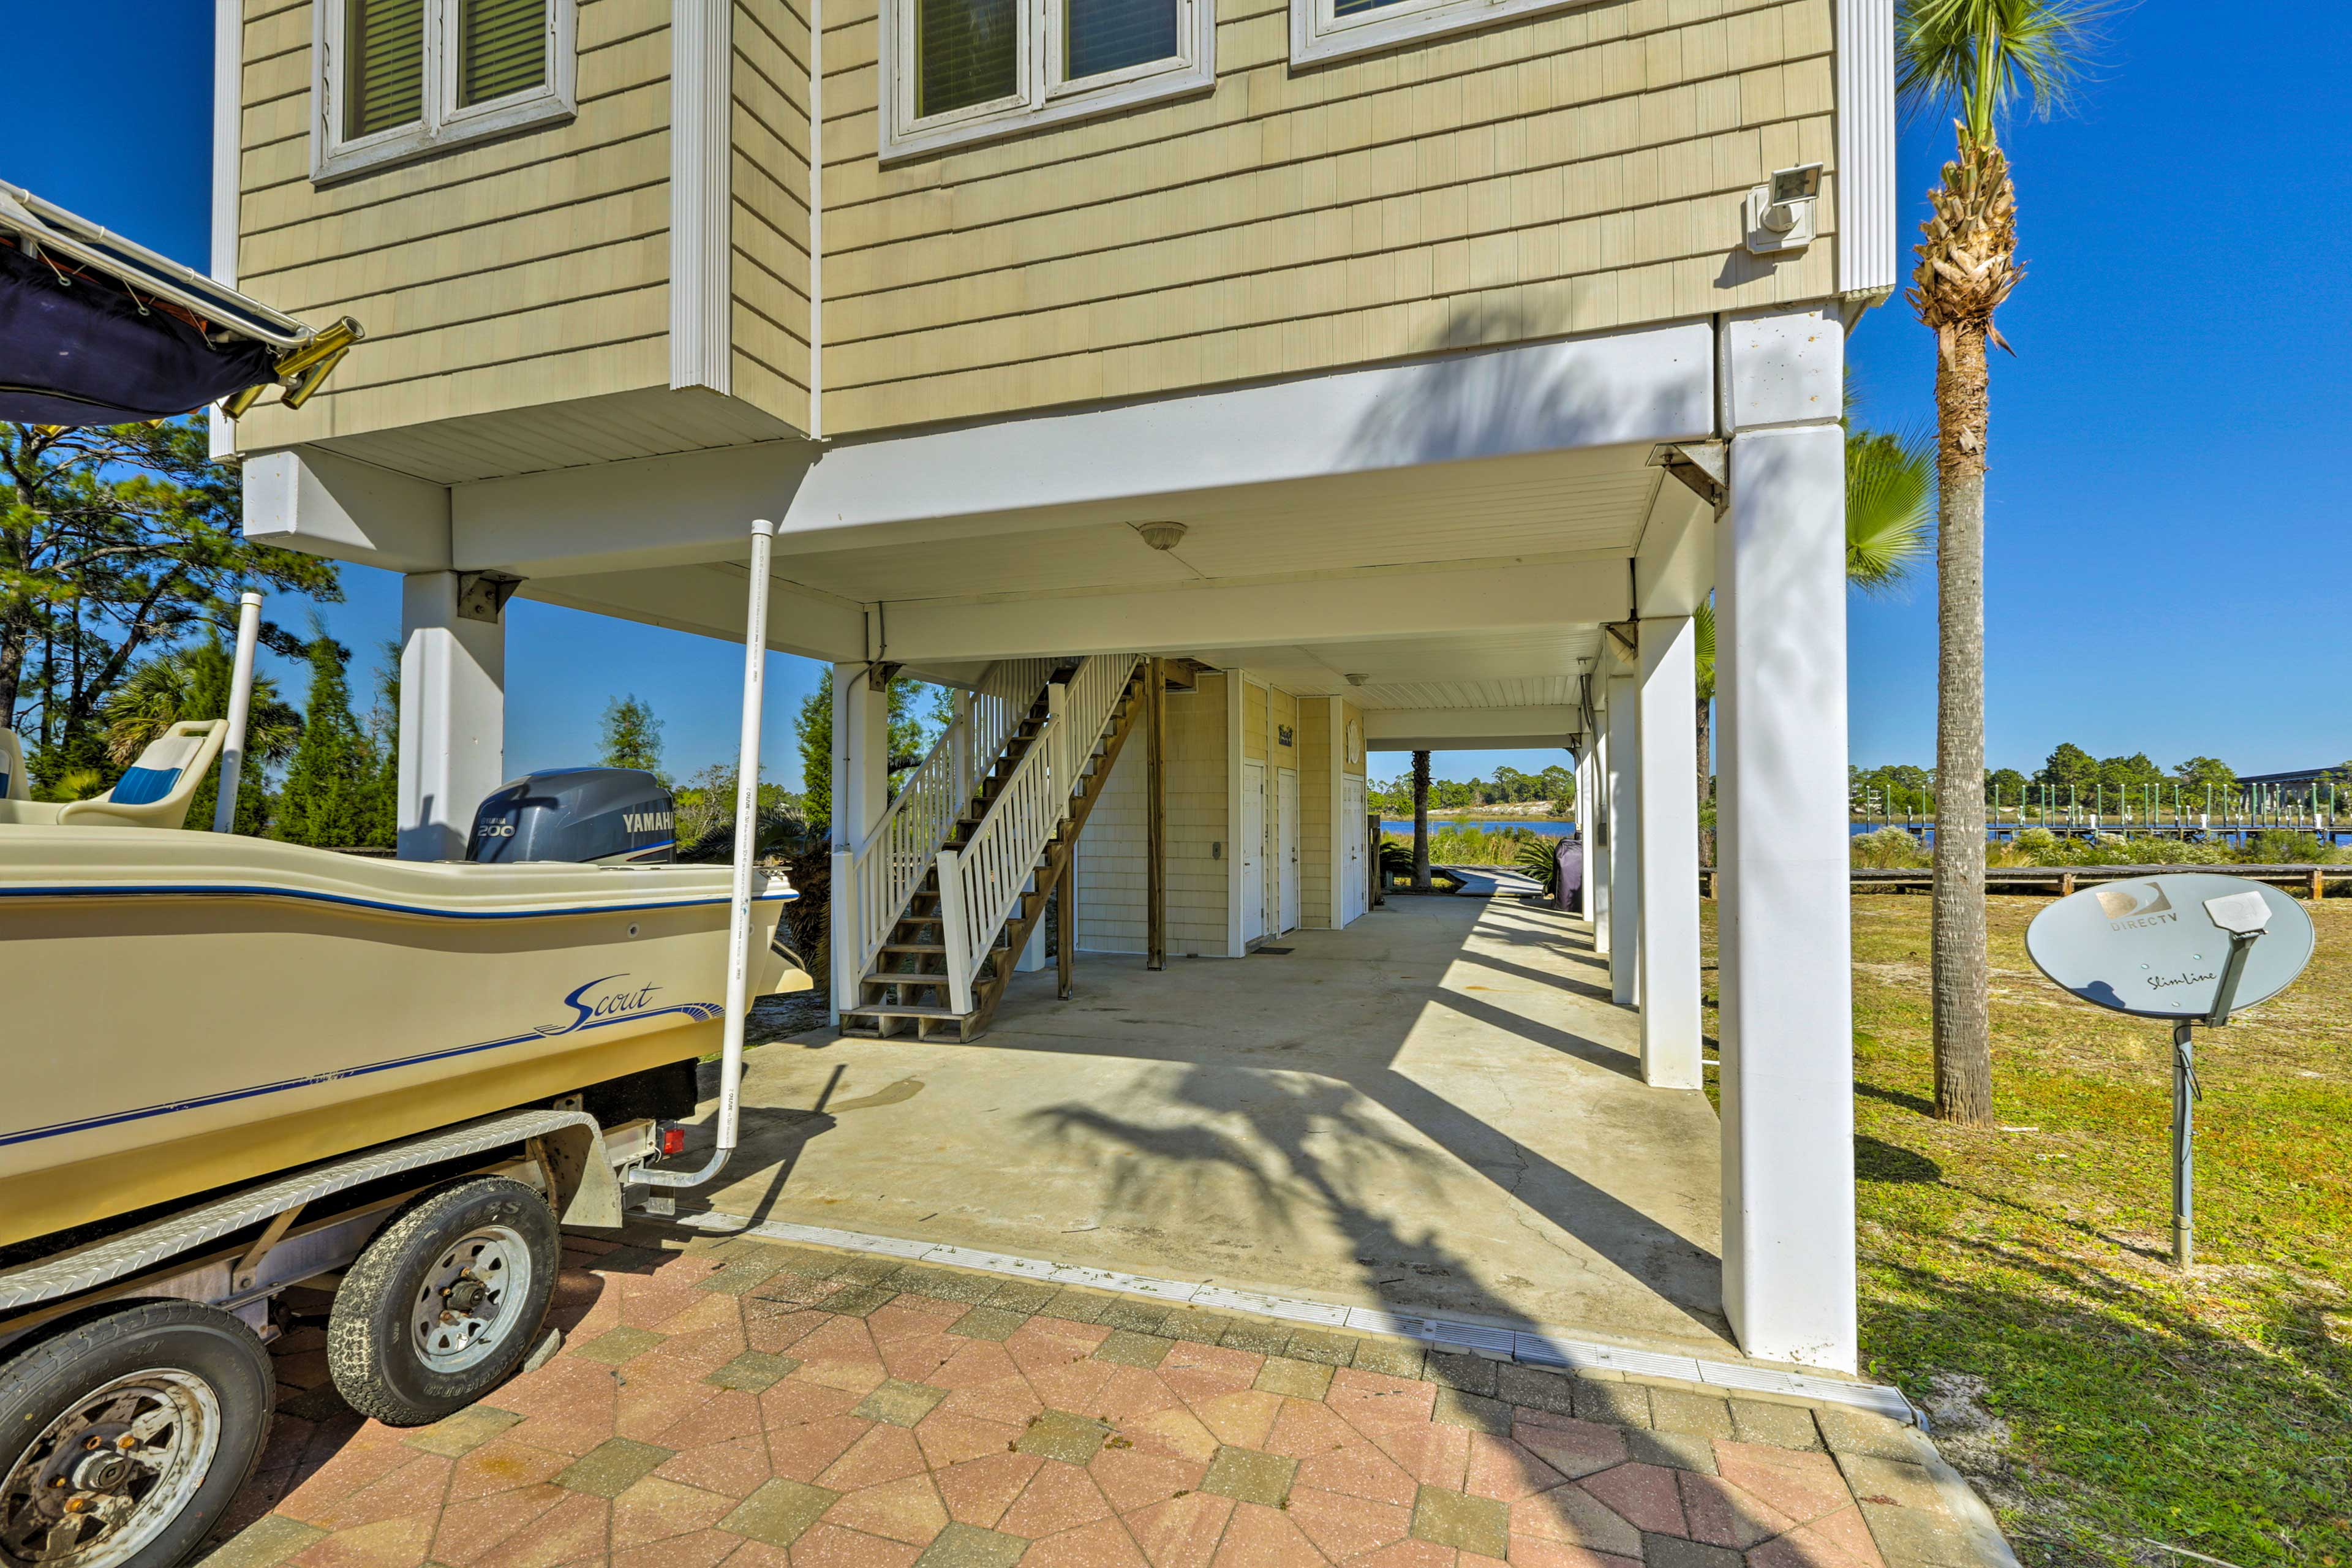 2 cars can be parked in the carport, while 2 additional cars can be parked in the driveway.